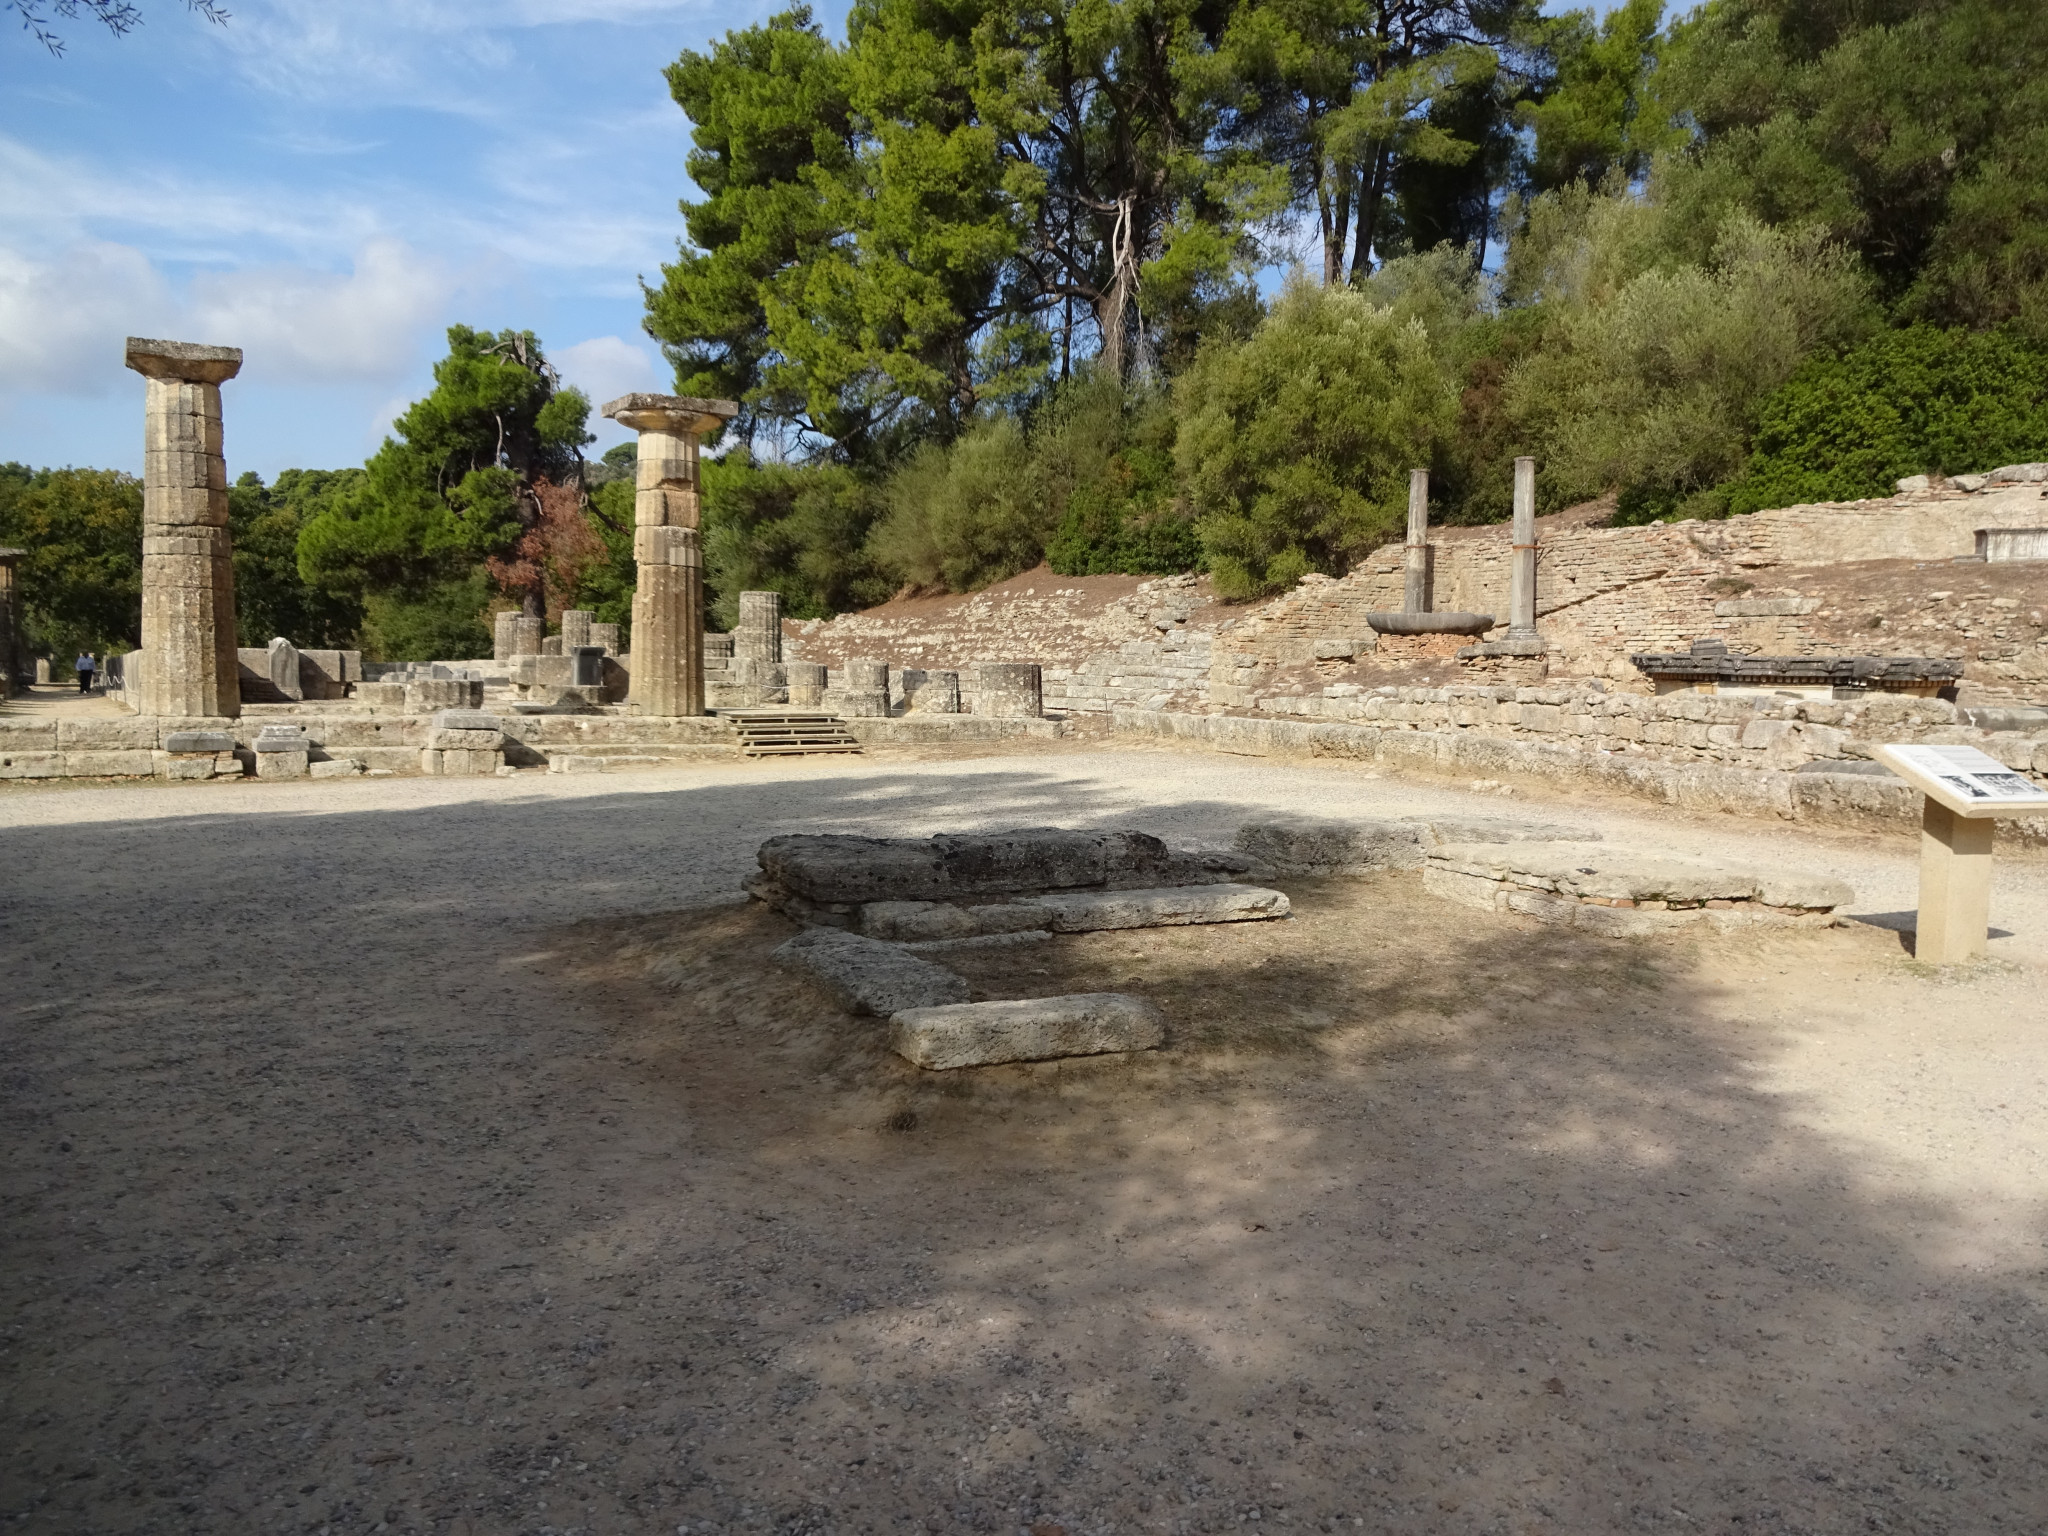 The site of the ancient Olympic Games, including the Temple of Hera, will be available to view in a digital application as part of a new project ©Philip Barker